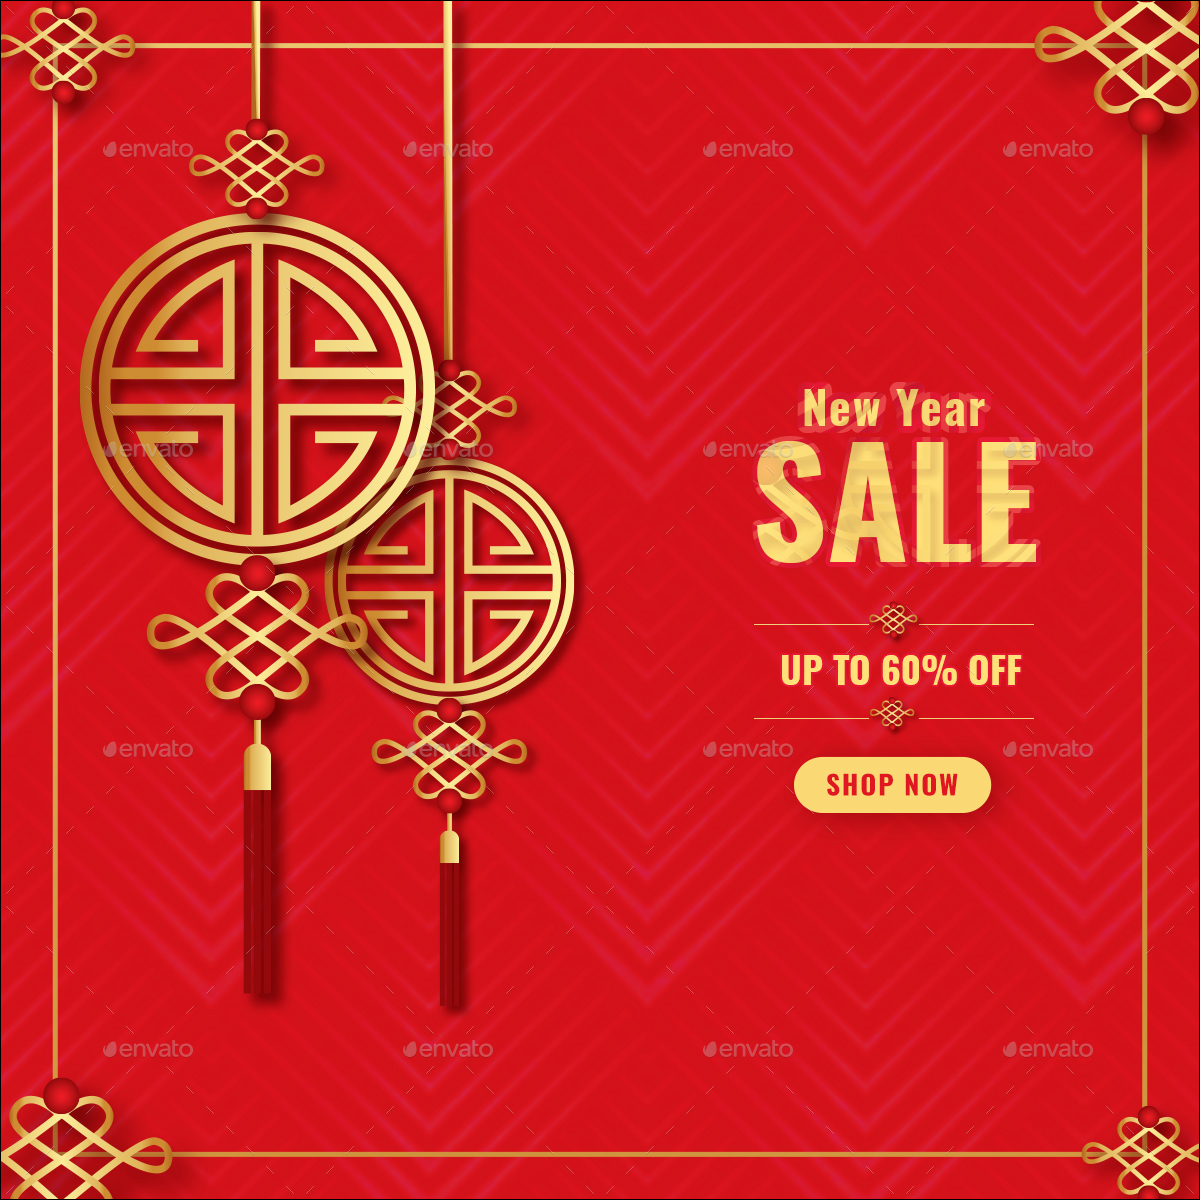 Chinese new year banner set by doto graphicriver doto 970 chinese new year design01preview1g doto 970 chinese new year design01preview2g alramifo Gallery